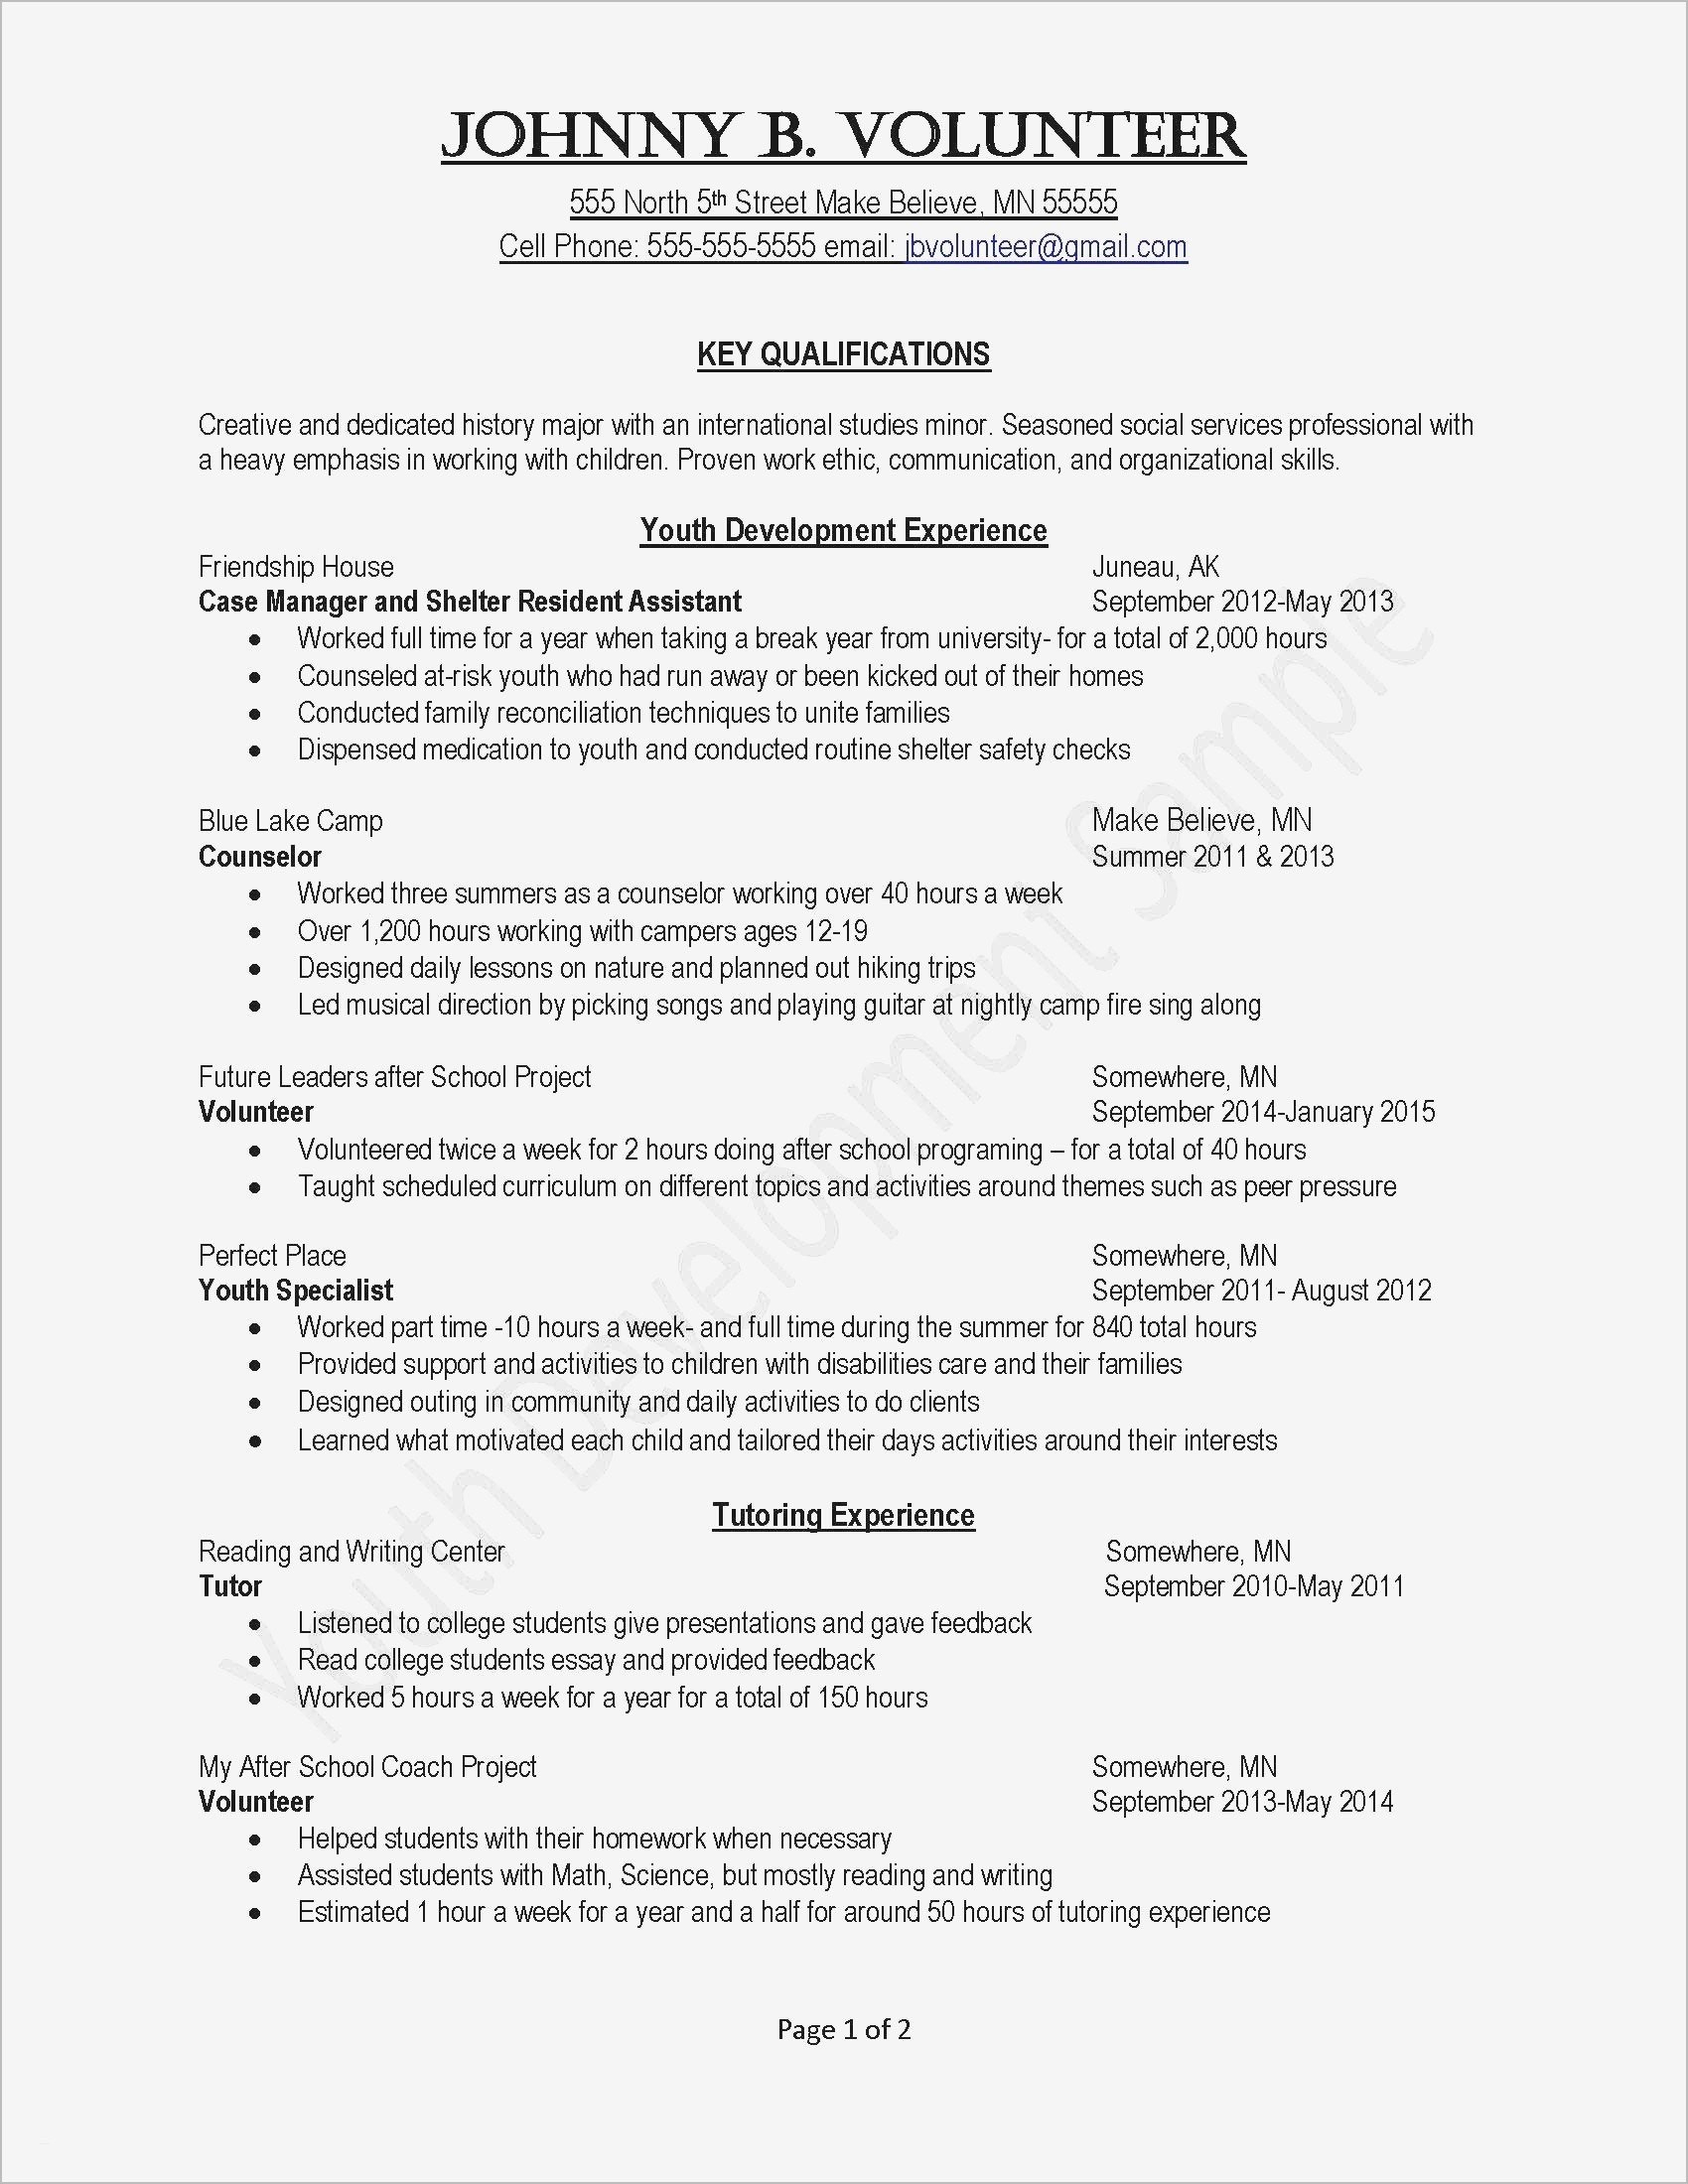 Video Production Resume Template - Job Application Covering Letter Template Save Activities Resume